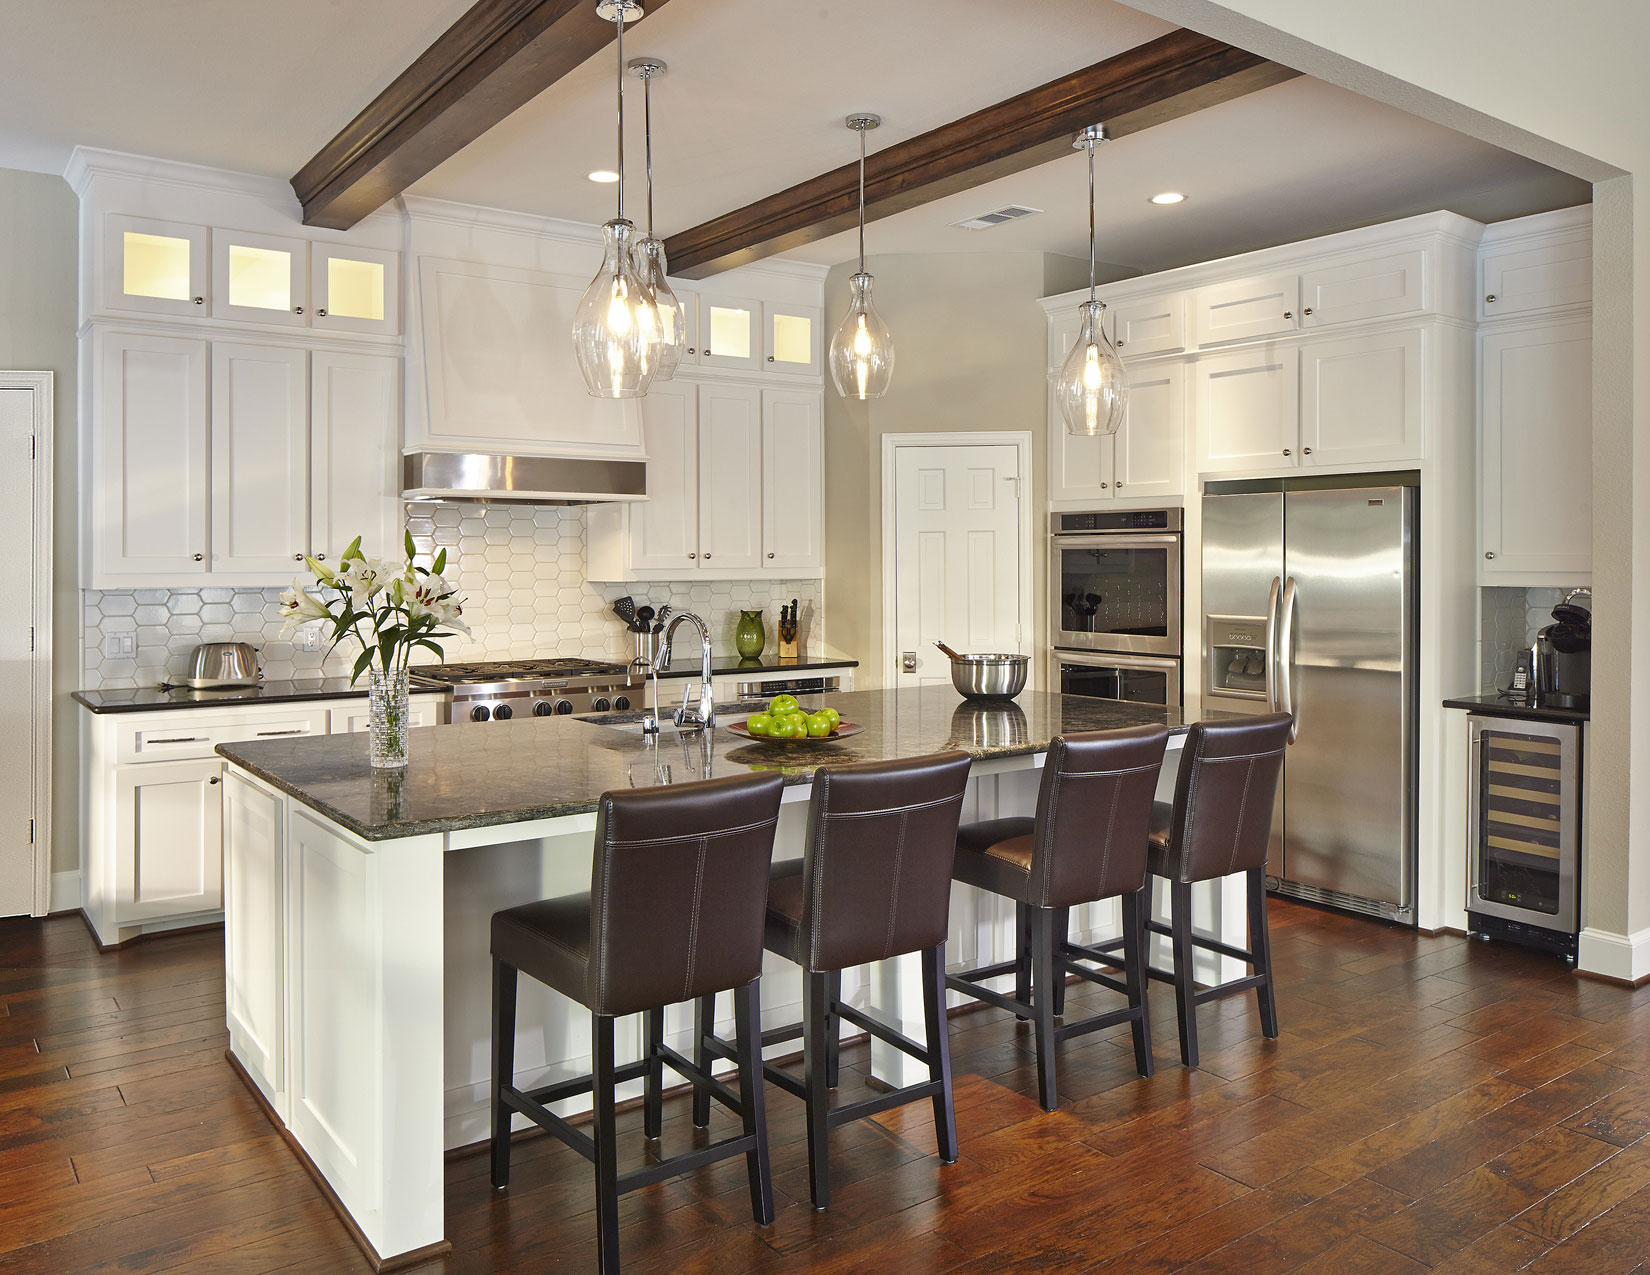 Project  Stylish Drab to Fab Kitchen Makeover In Dallas Stylish Drab to Fab Kitchen Makeover in Dallas  Texas